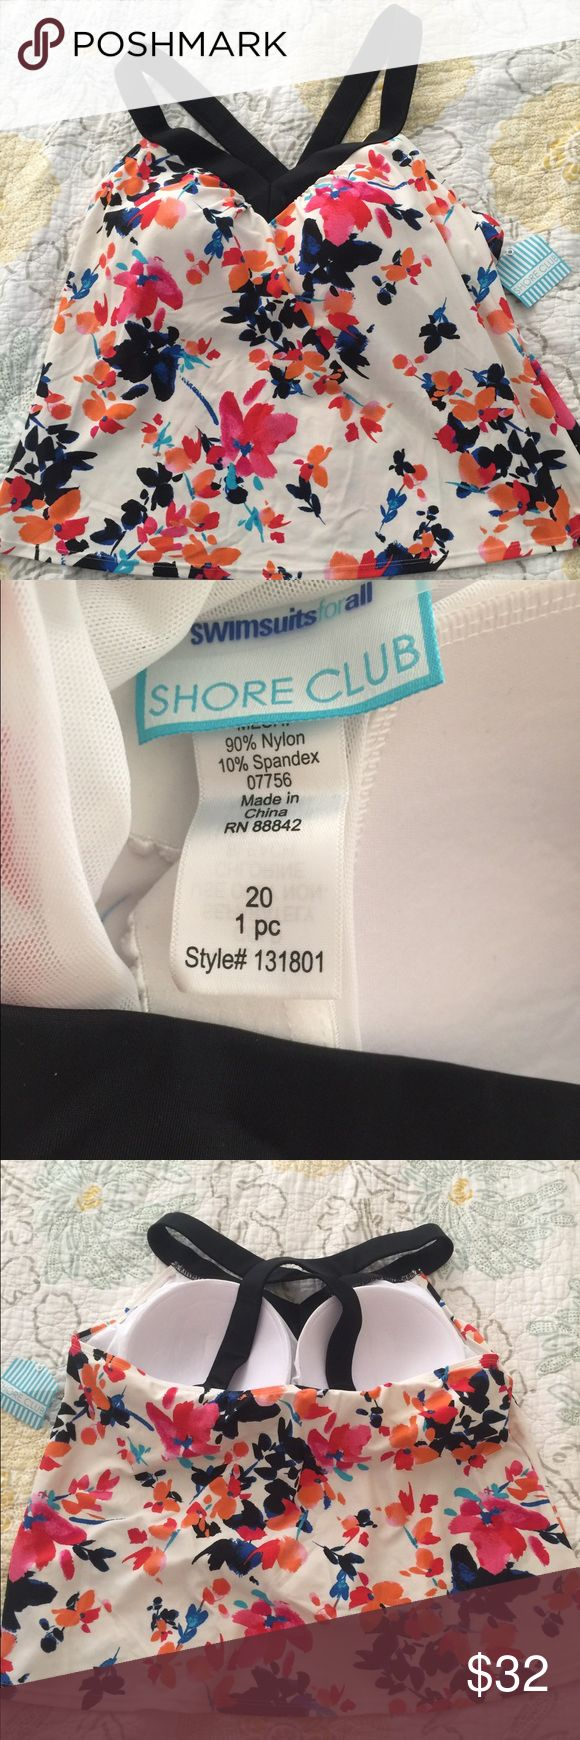 Plus size tankini top Plus size tankini top. Size 20. The base color of this suit is more of a cream not white 🌟. Floral pattern is multi color 🌟 top only.   New with tags 😊. Shore Club  Swim One Pieces